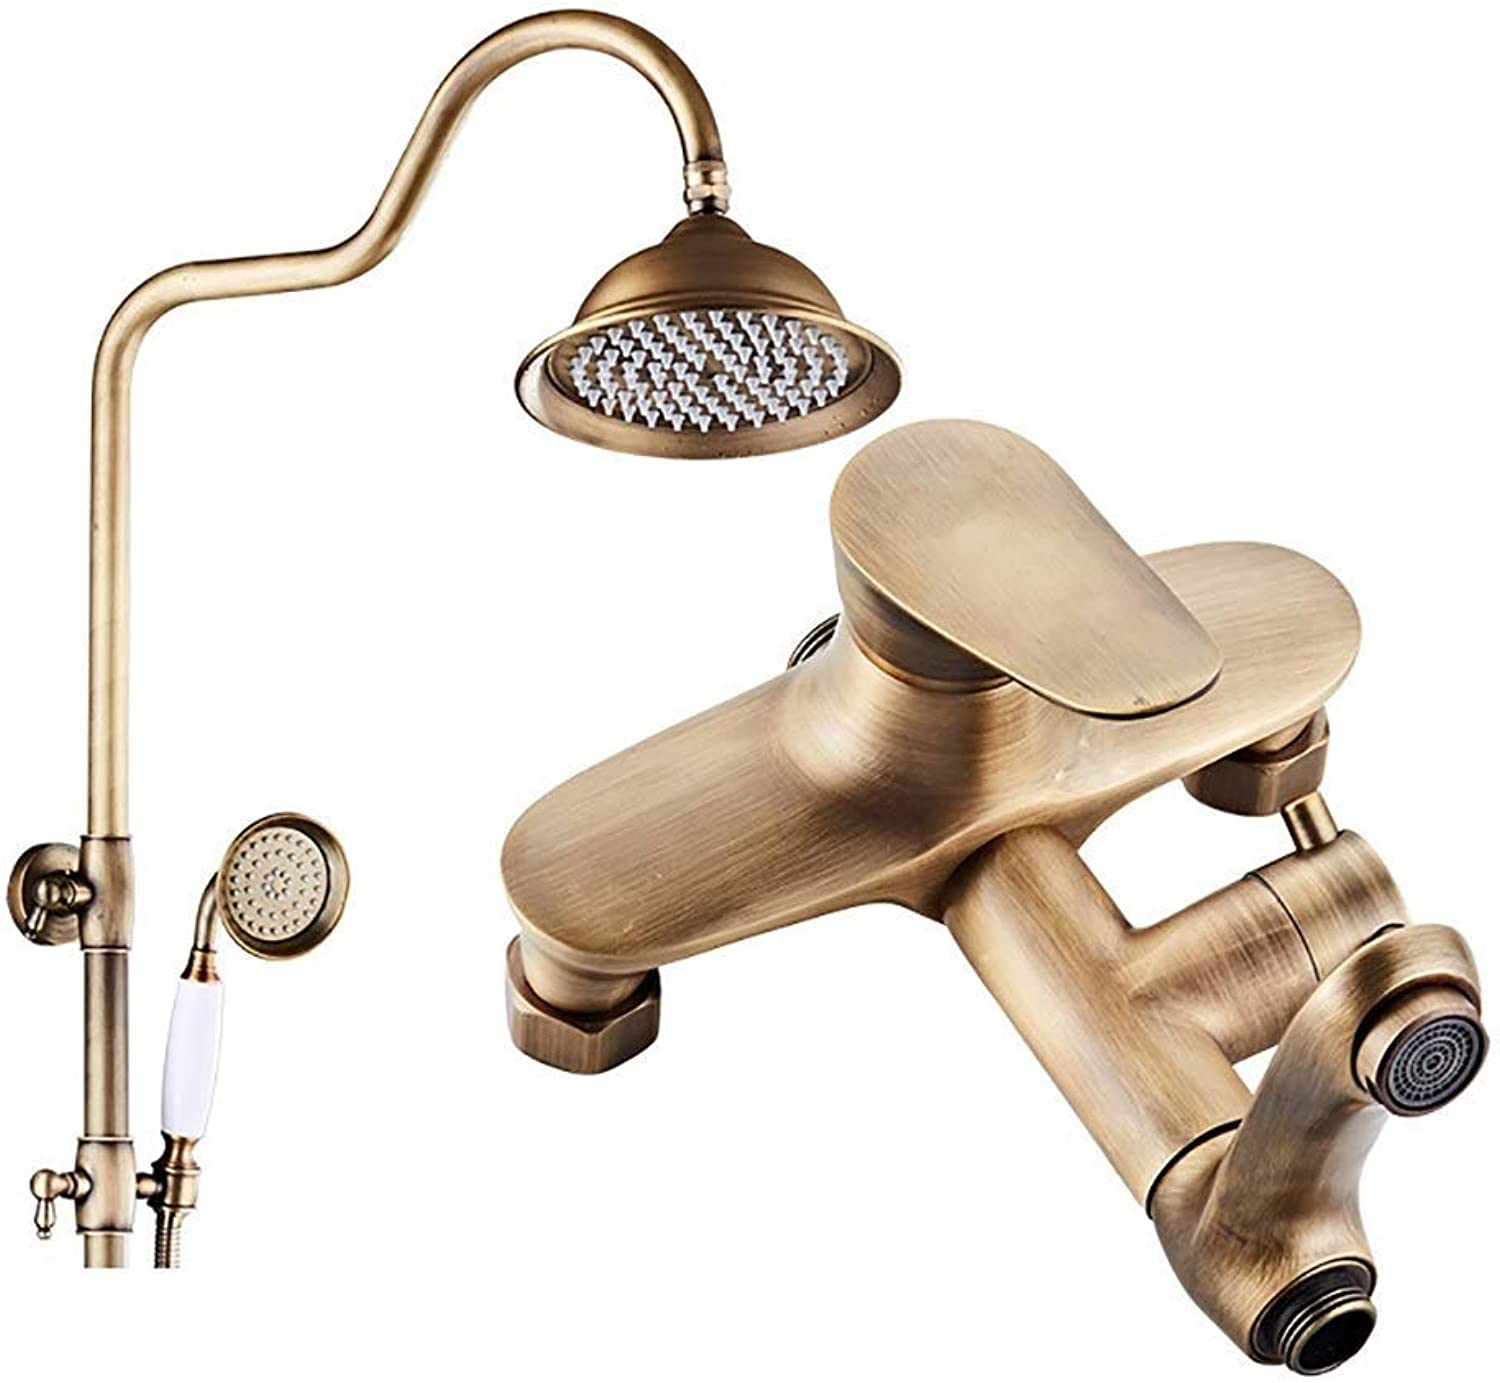 Retro Brass Waterfall Exposed Shower Kit Full Copper Shower Set, Wall-mounted shower poles extendable Bathroom redating Cold hot Water Tap (color   Brass, Size   B)